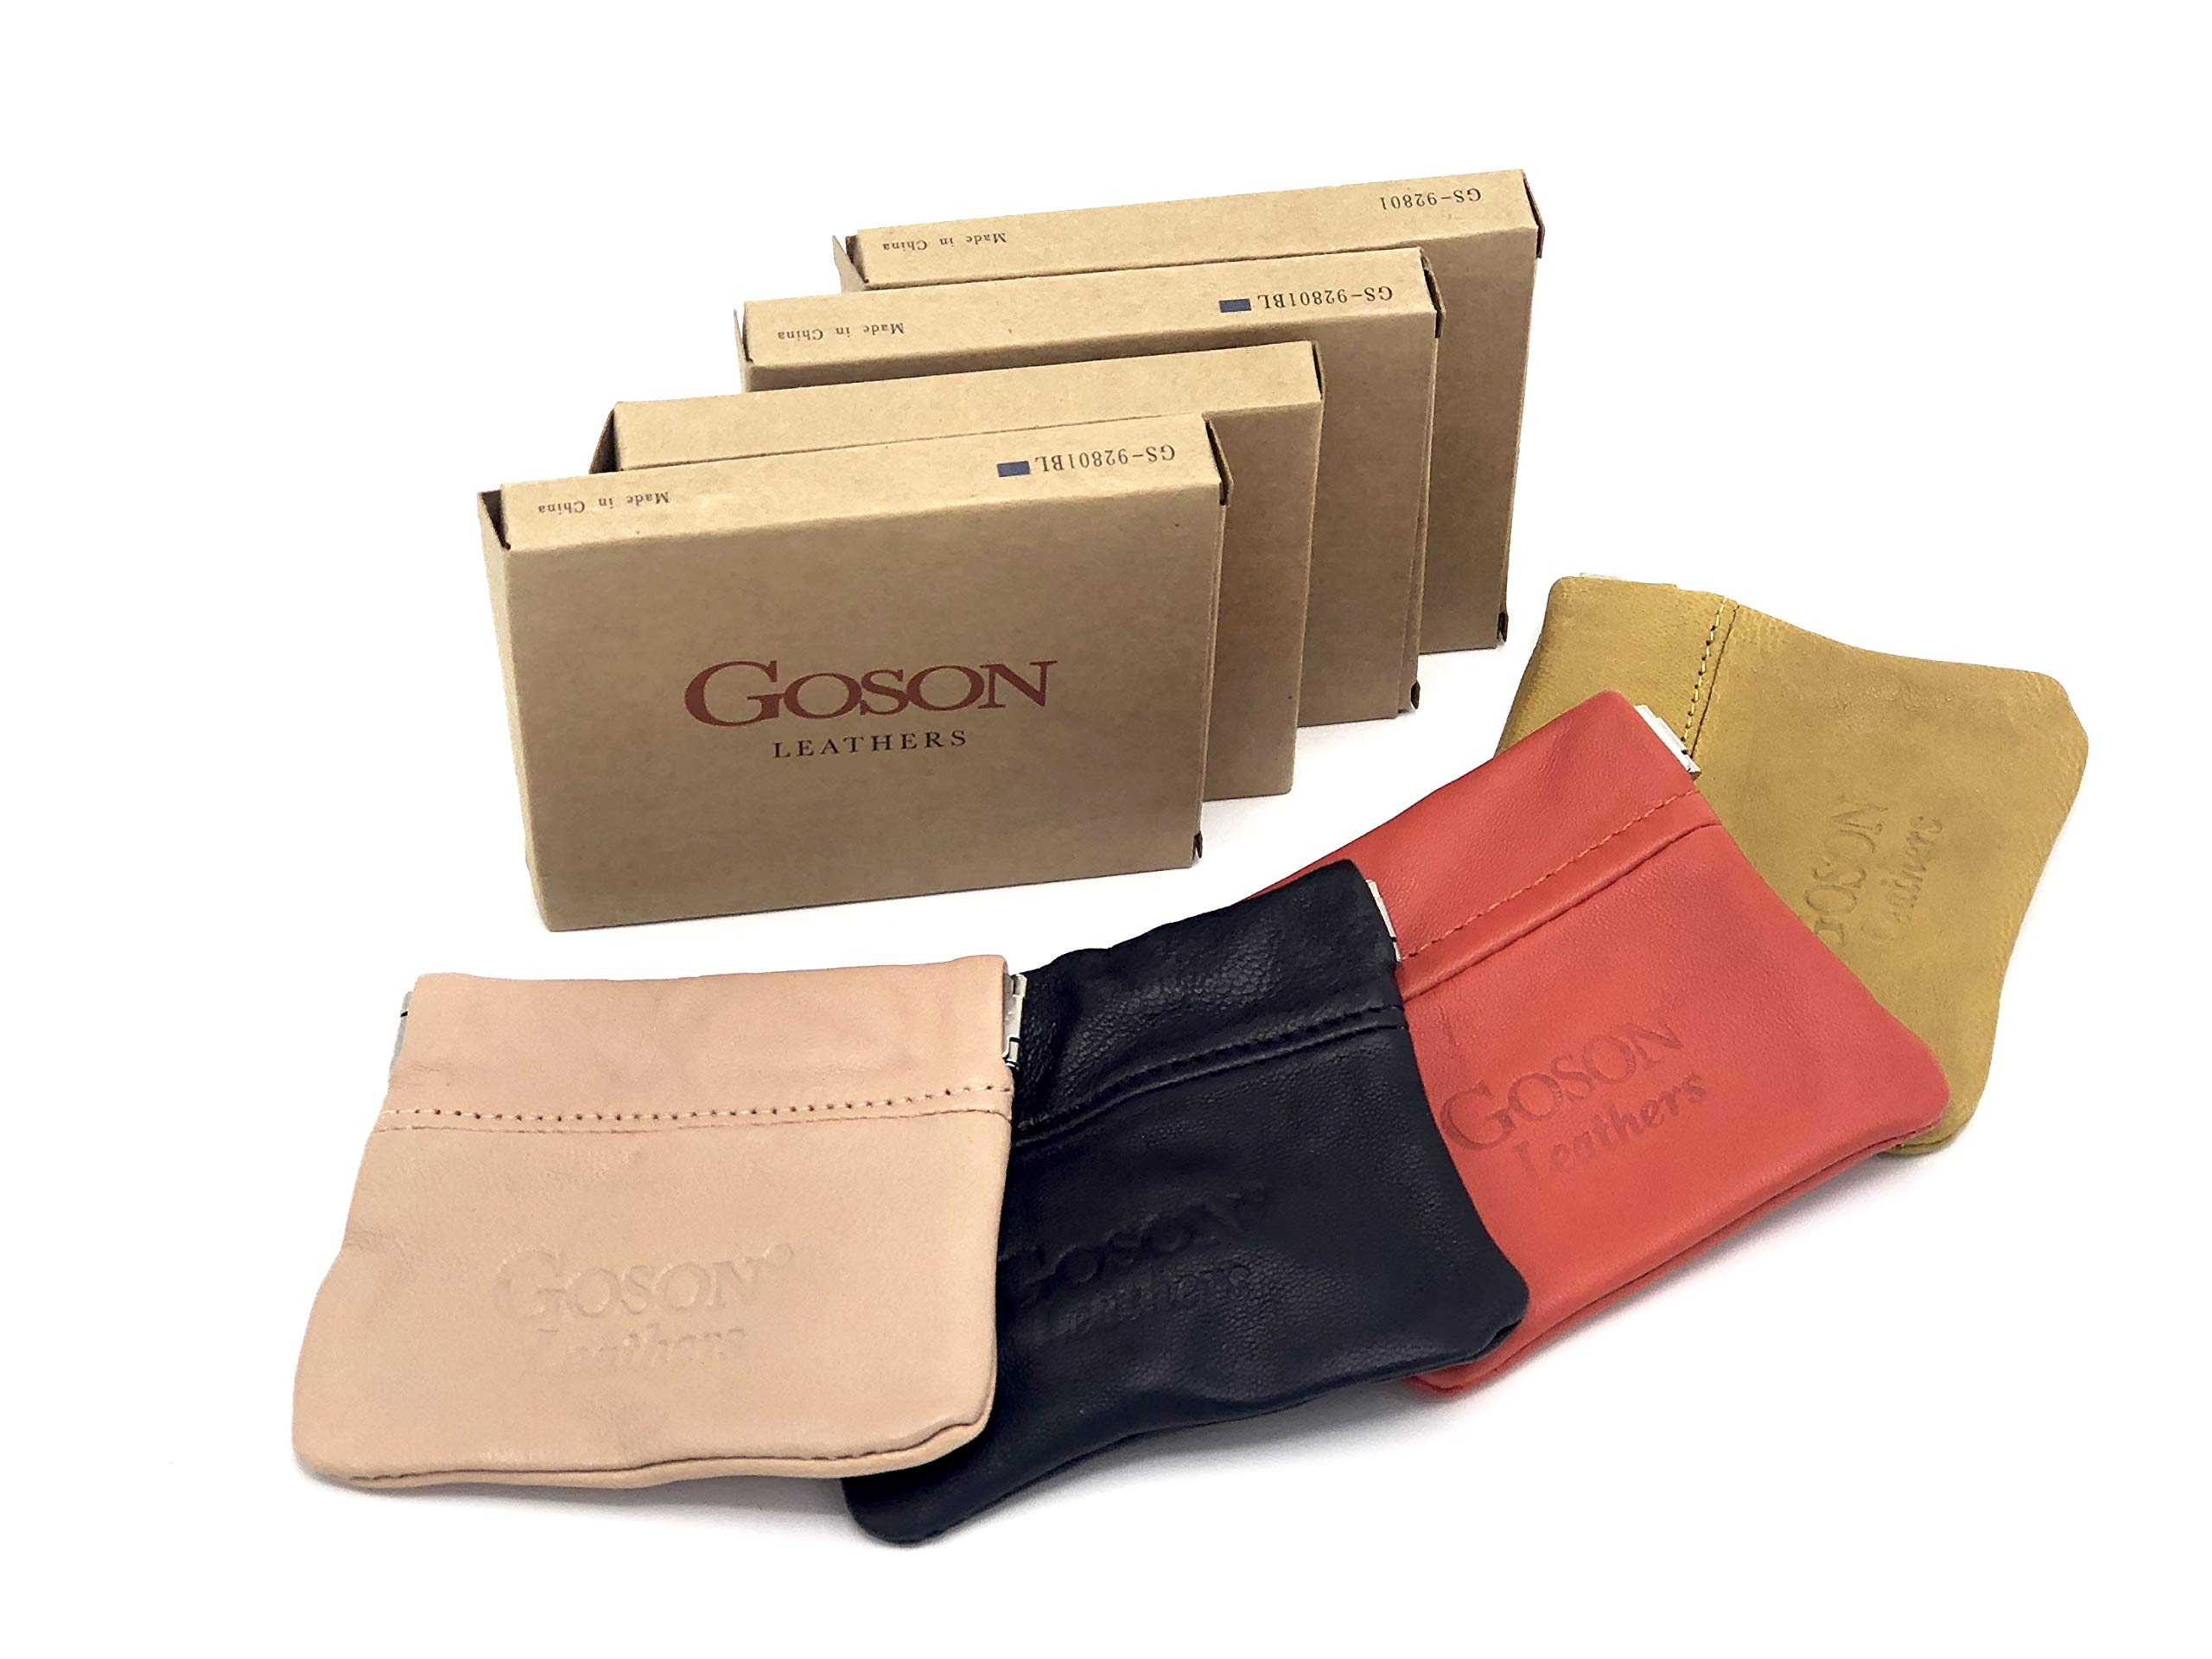 Goson Classic Leather Squeeze Coin Purse change Holder For Men and Women, Pouch size 3.25 in X 3.25 in (4 Pack - Peach, Navy Blue, Orange, Yellow) by Goson